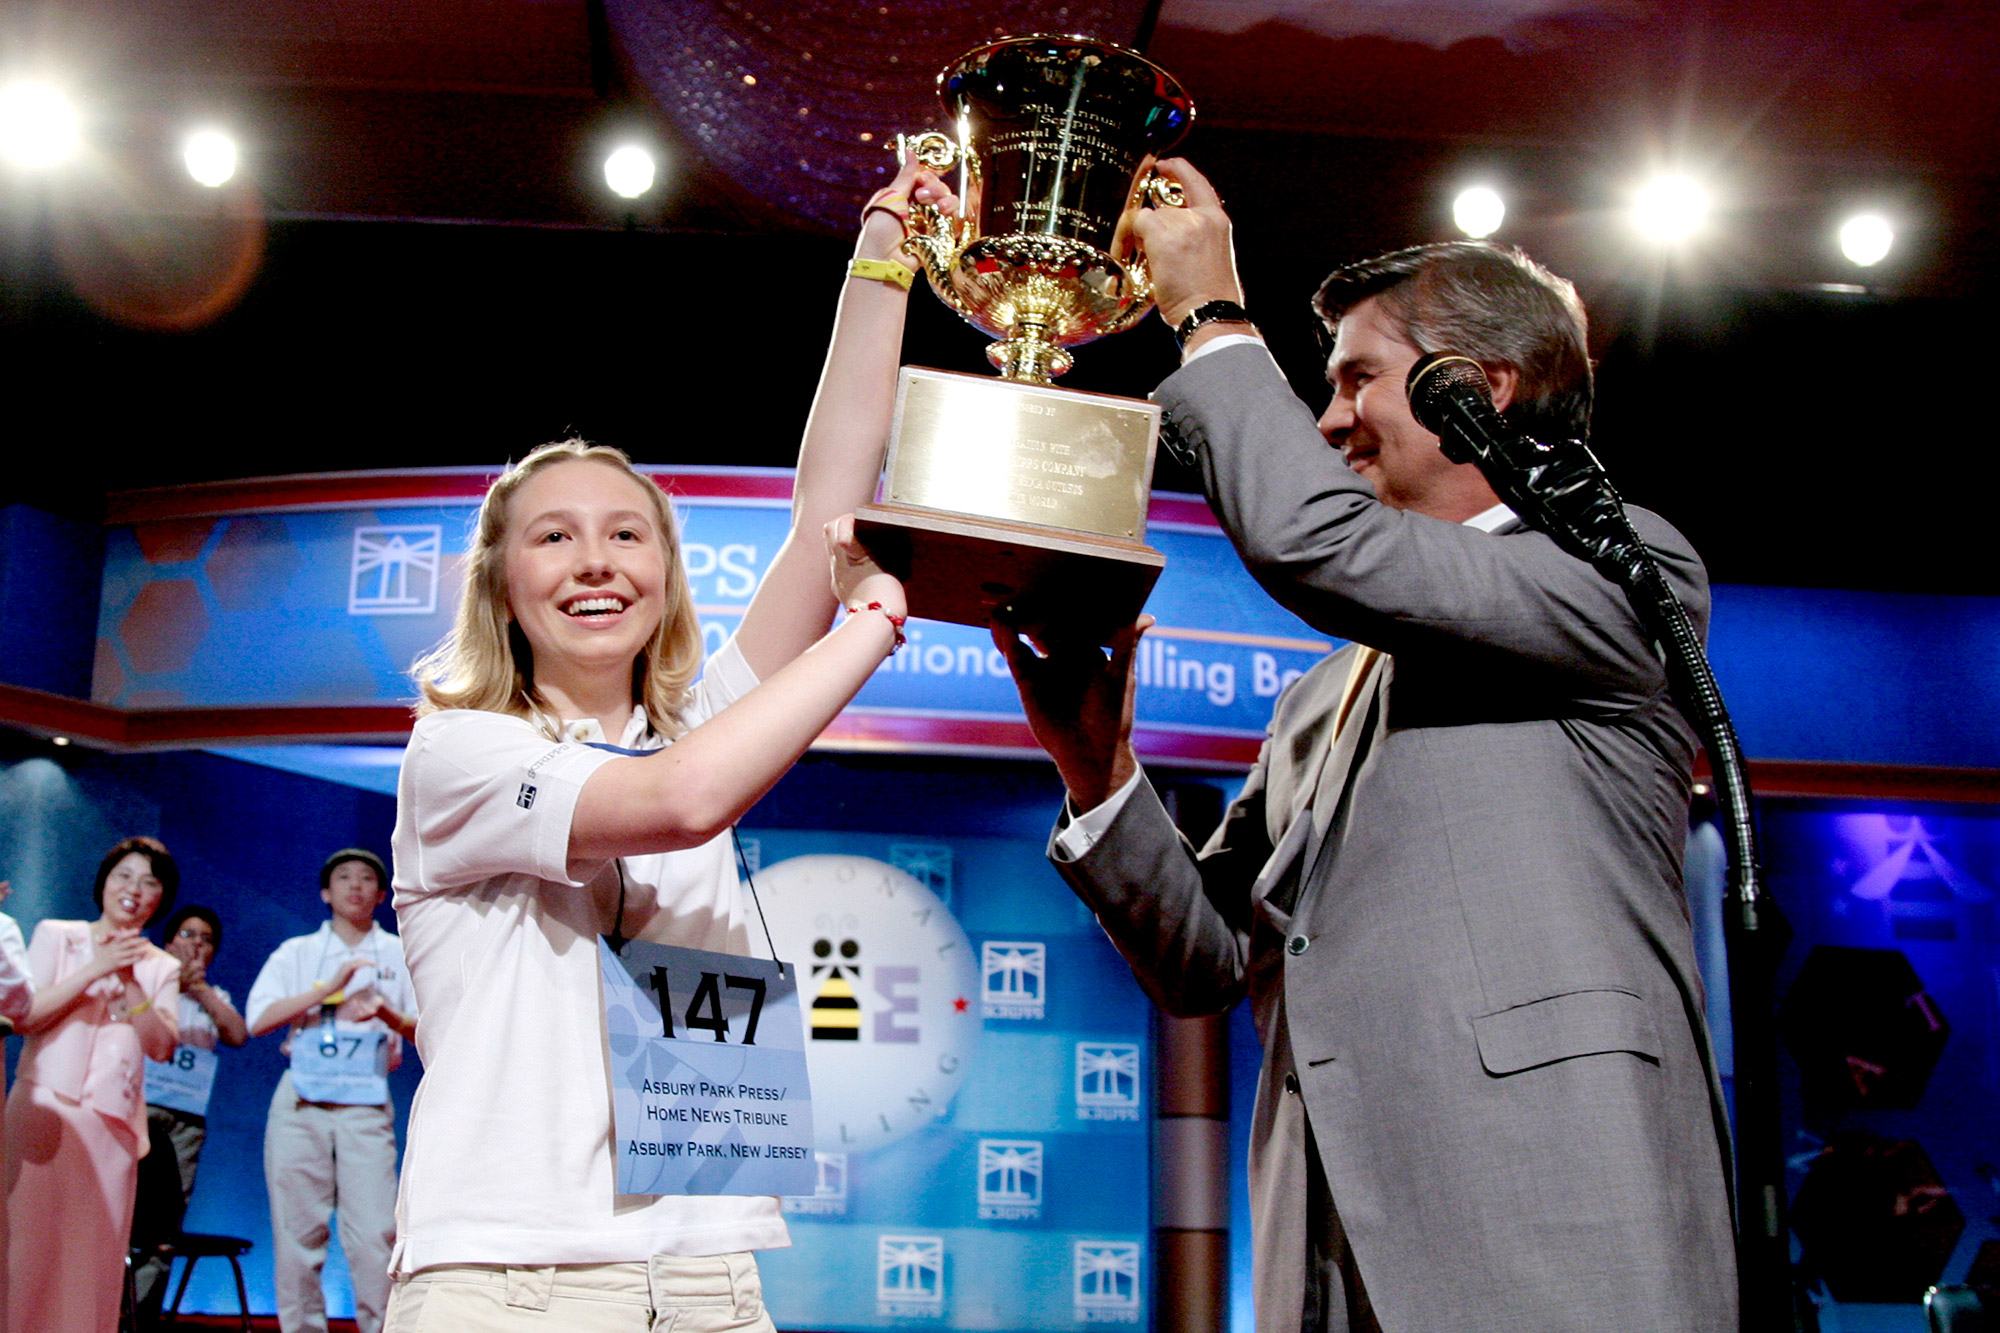 Katharine Close of New Jersey is the winner of the 79th Scripps Howard National Spelling Bee in Washington, D.C., on Thursday, June 1, 2006